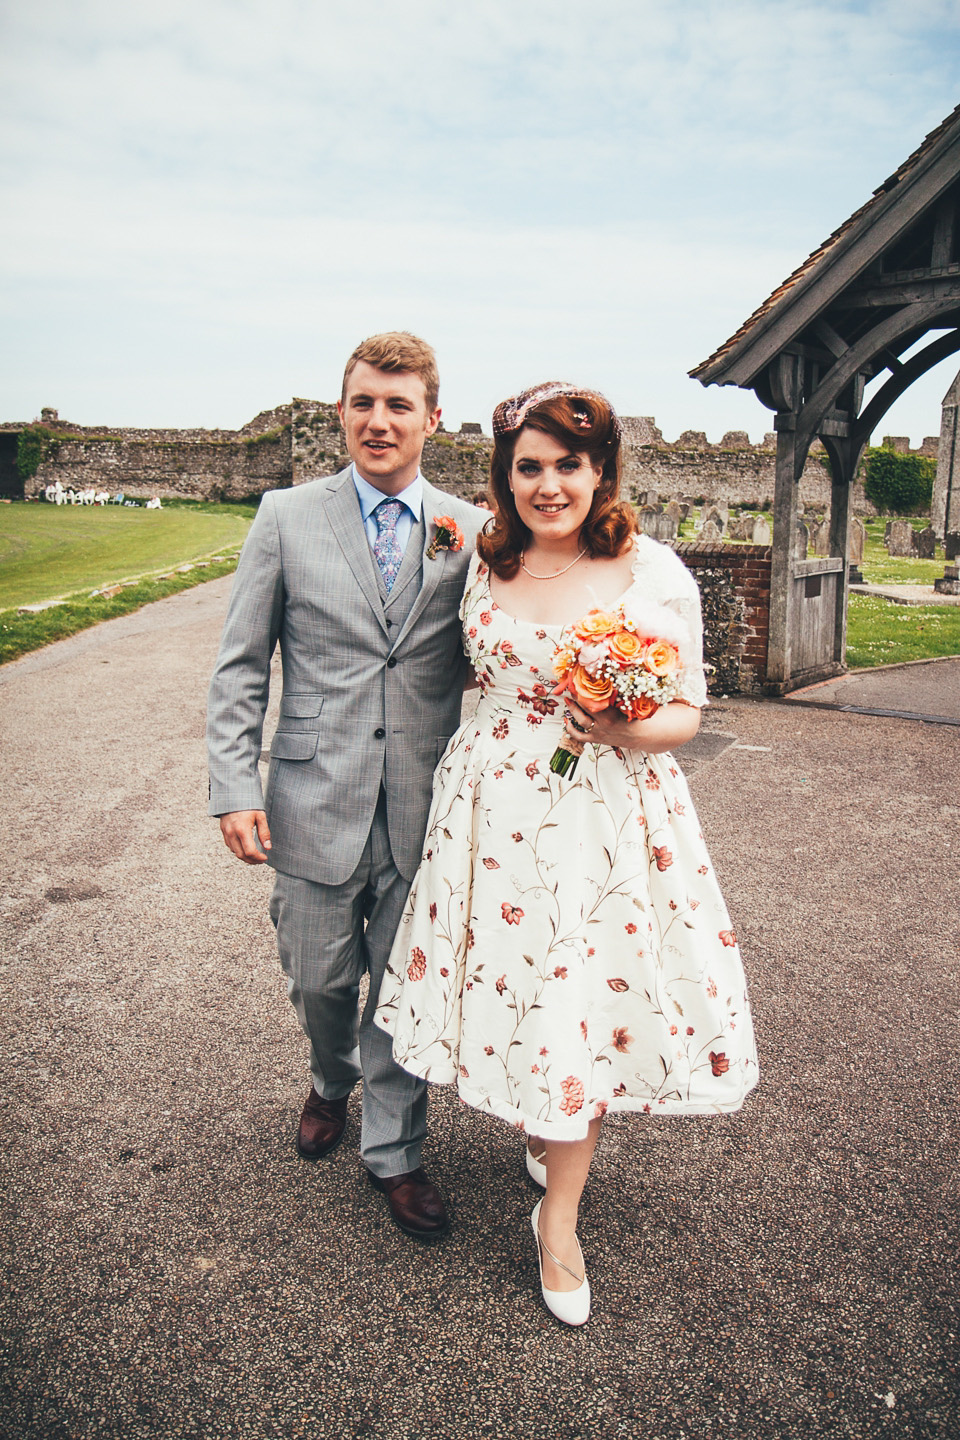 A 50 S Floral Style Wedding Dress For A Retro Inspired Memorial